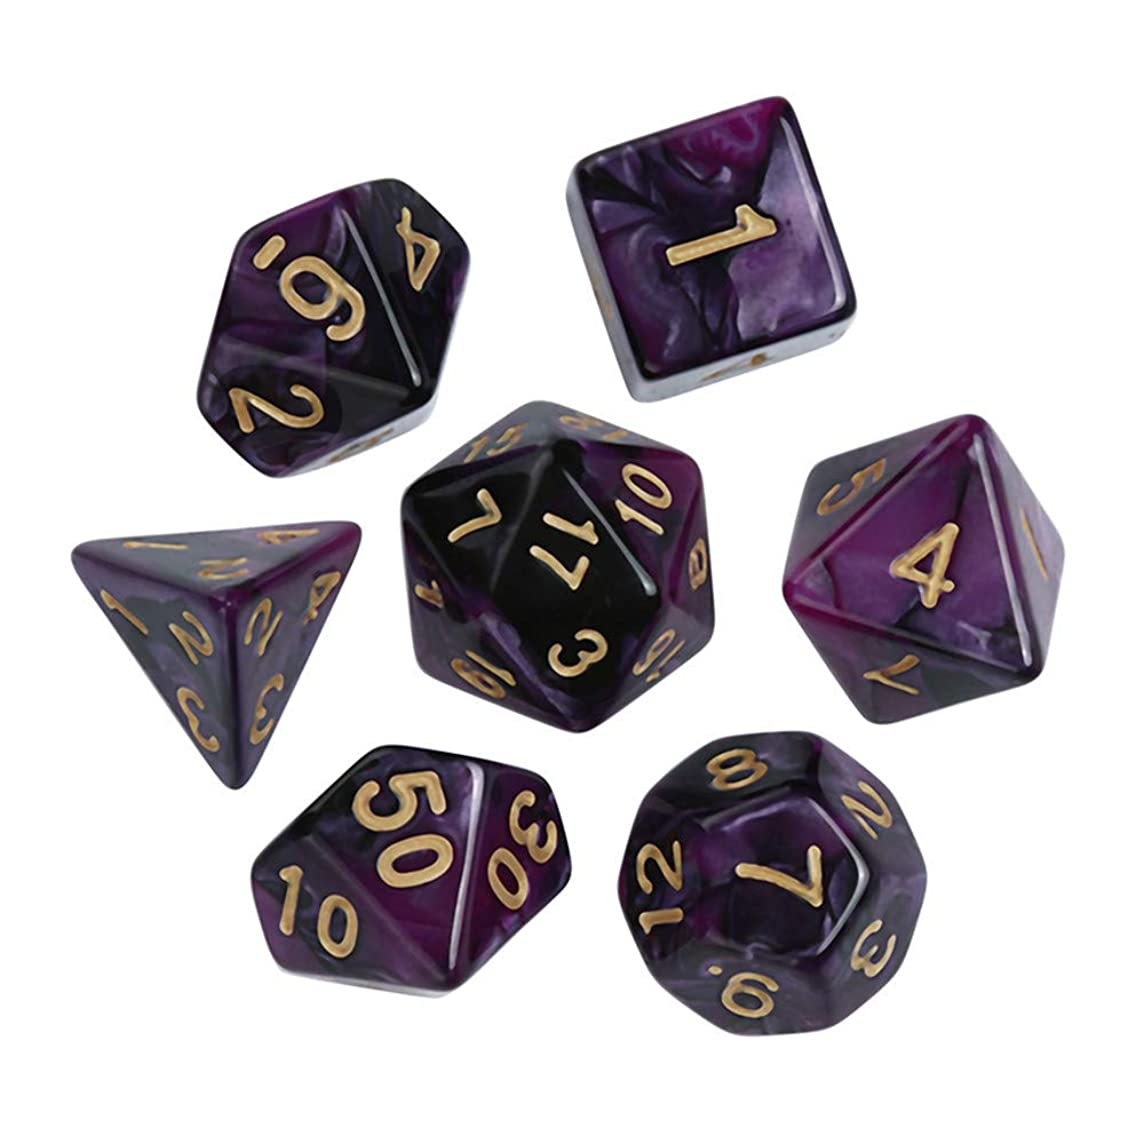 Huaa Polyhedral 7-Die Dice Set for Dungeons and Dragons with Black Pouch